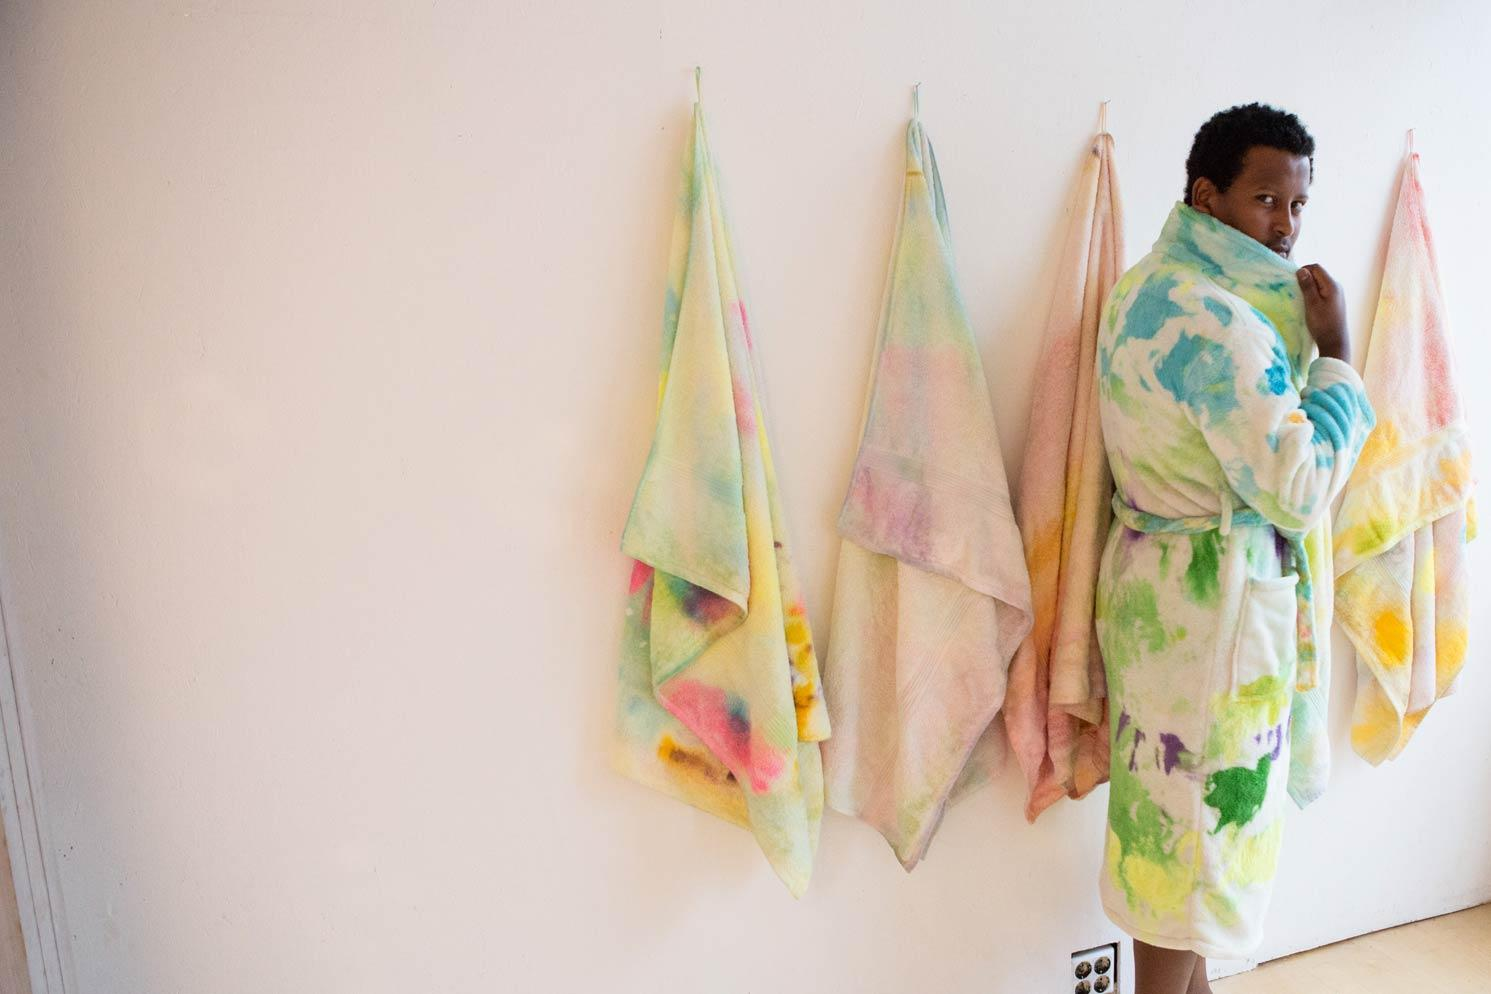 Limited edition of sauna sessions with paintings as towels and robes/ robes and towels as paintings in SmallProjects Tromso gallery. 2014. Photo by Kasia Mikolajewska